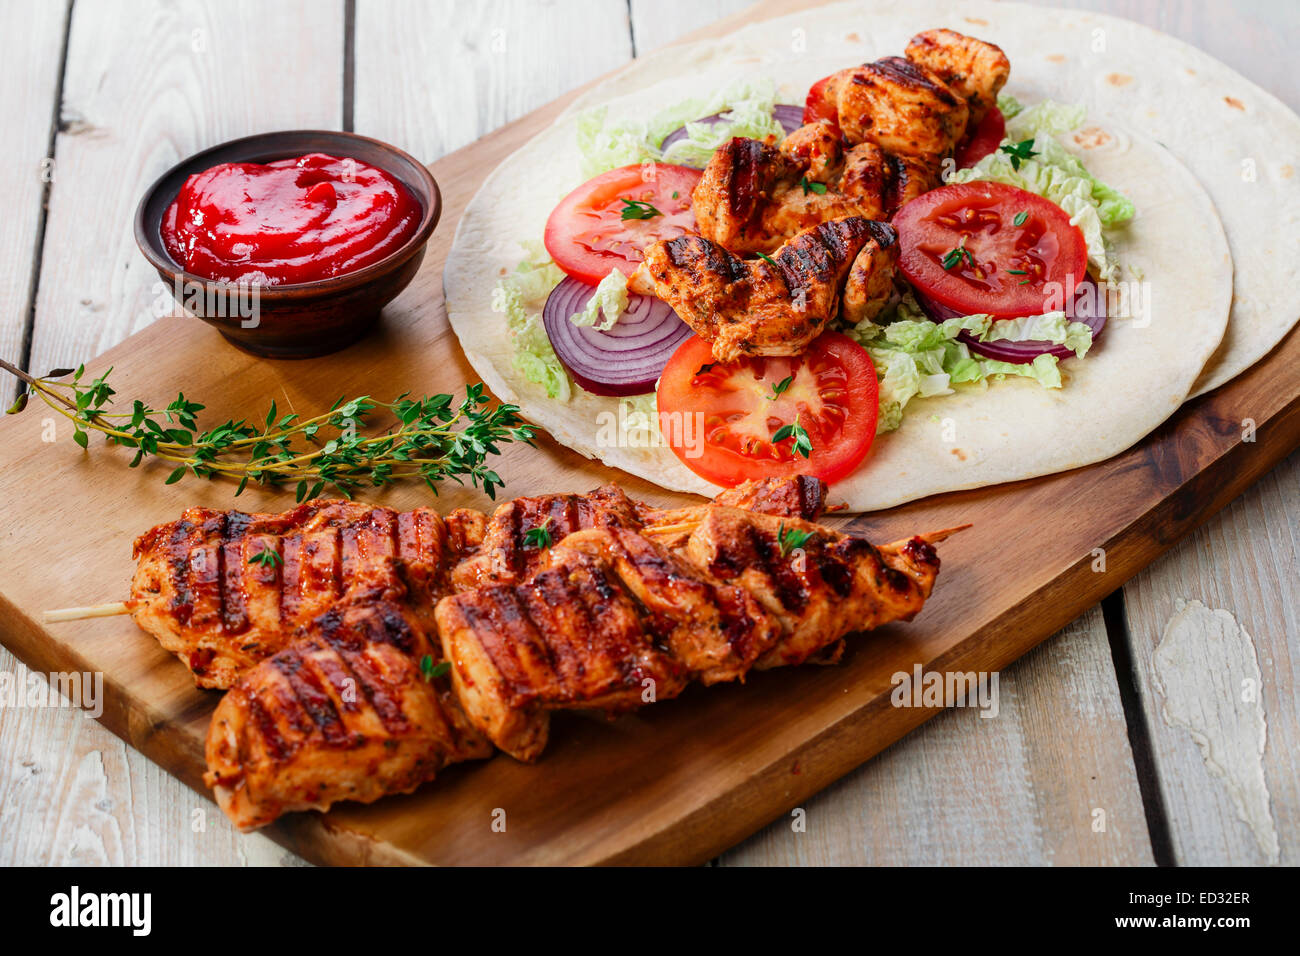 grilled chicken shawarma with sauce - Stock Image